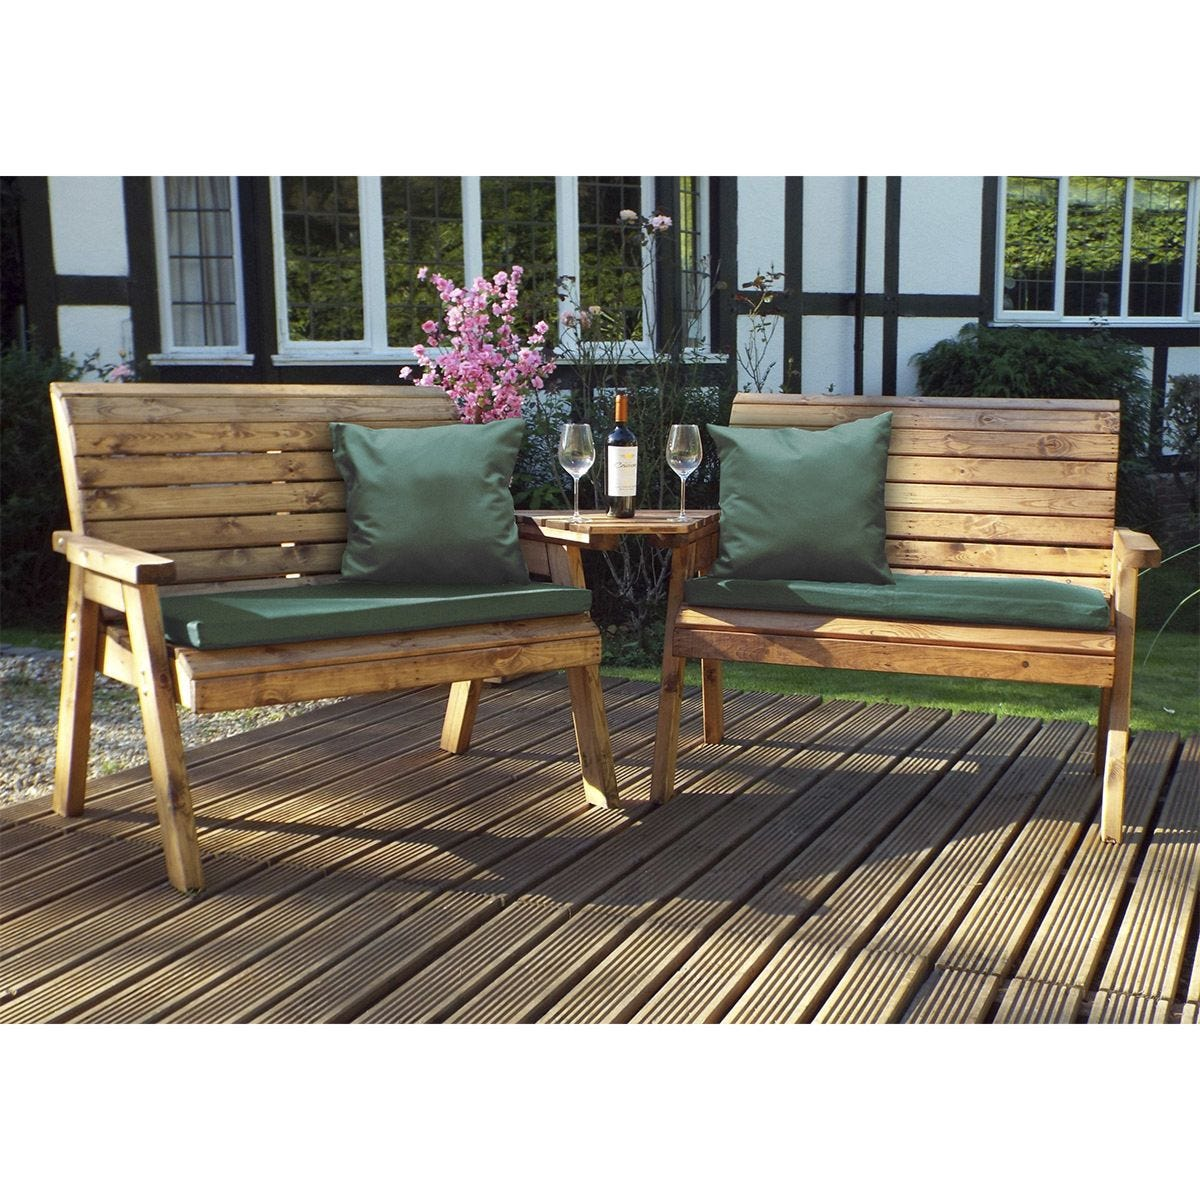 Charles Taylor Twin Bench Set Angled with Green Cushions and Fitted Cover